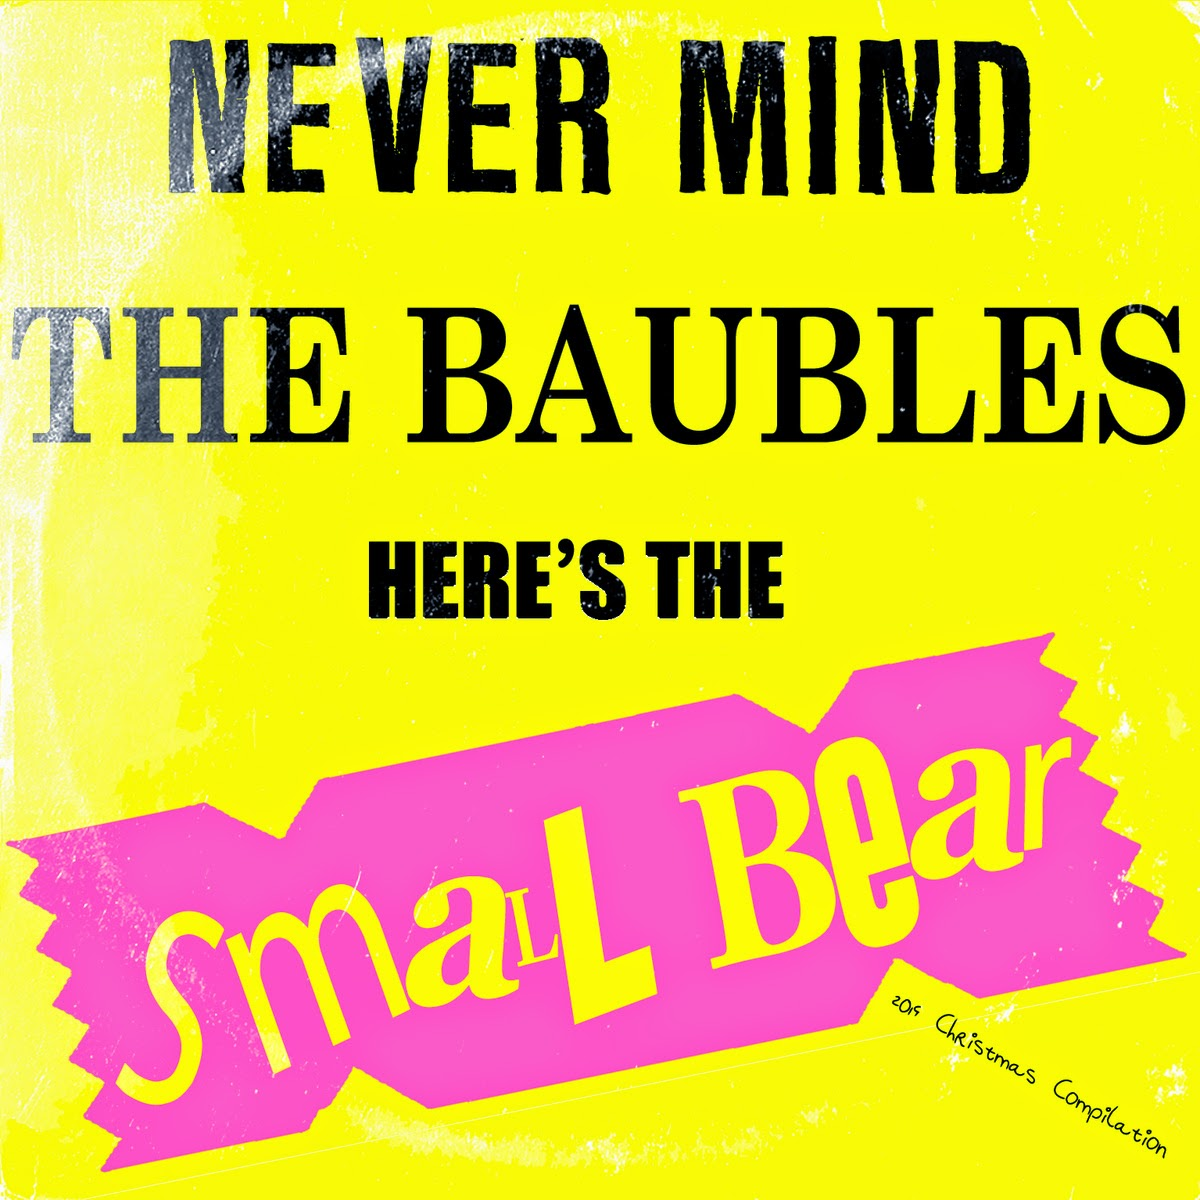 http://www.d4am.net/2014/11/small-bear-records-never-mind-baubles.html